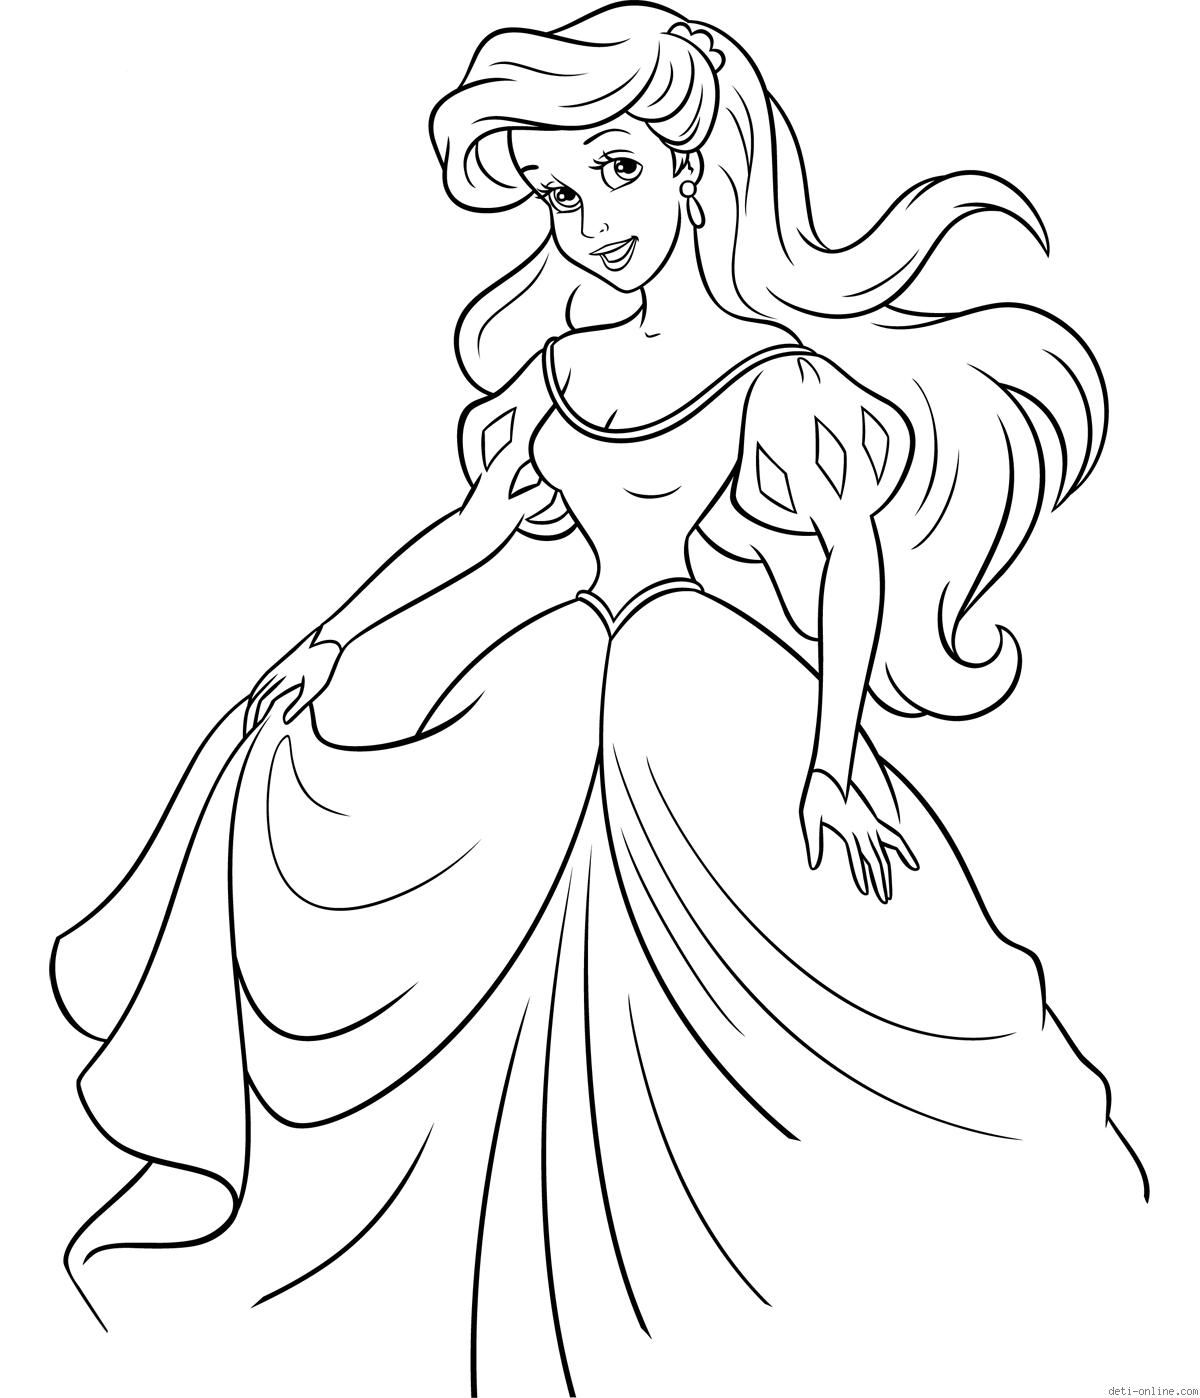 Ariel In The Dress Coloring Page Disney Princesses Mermaid